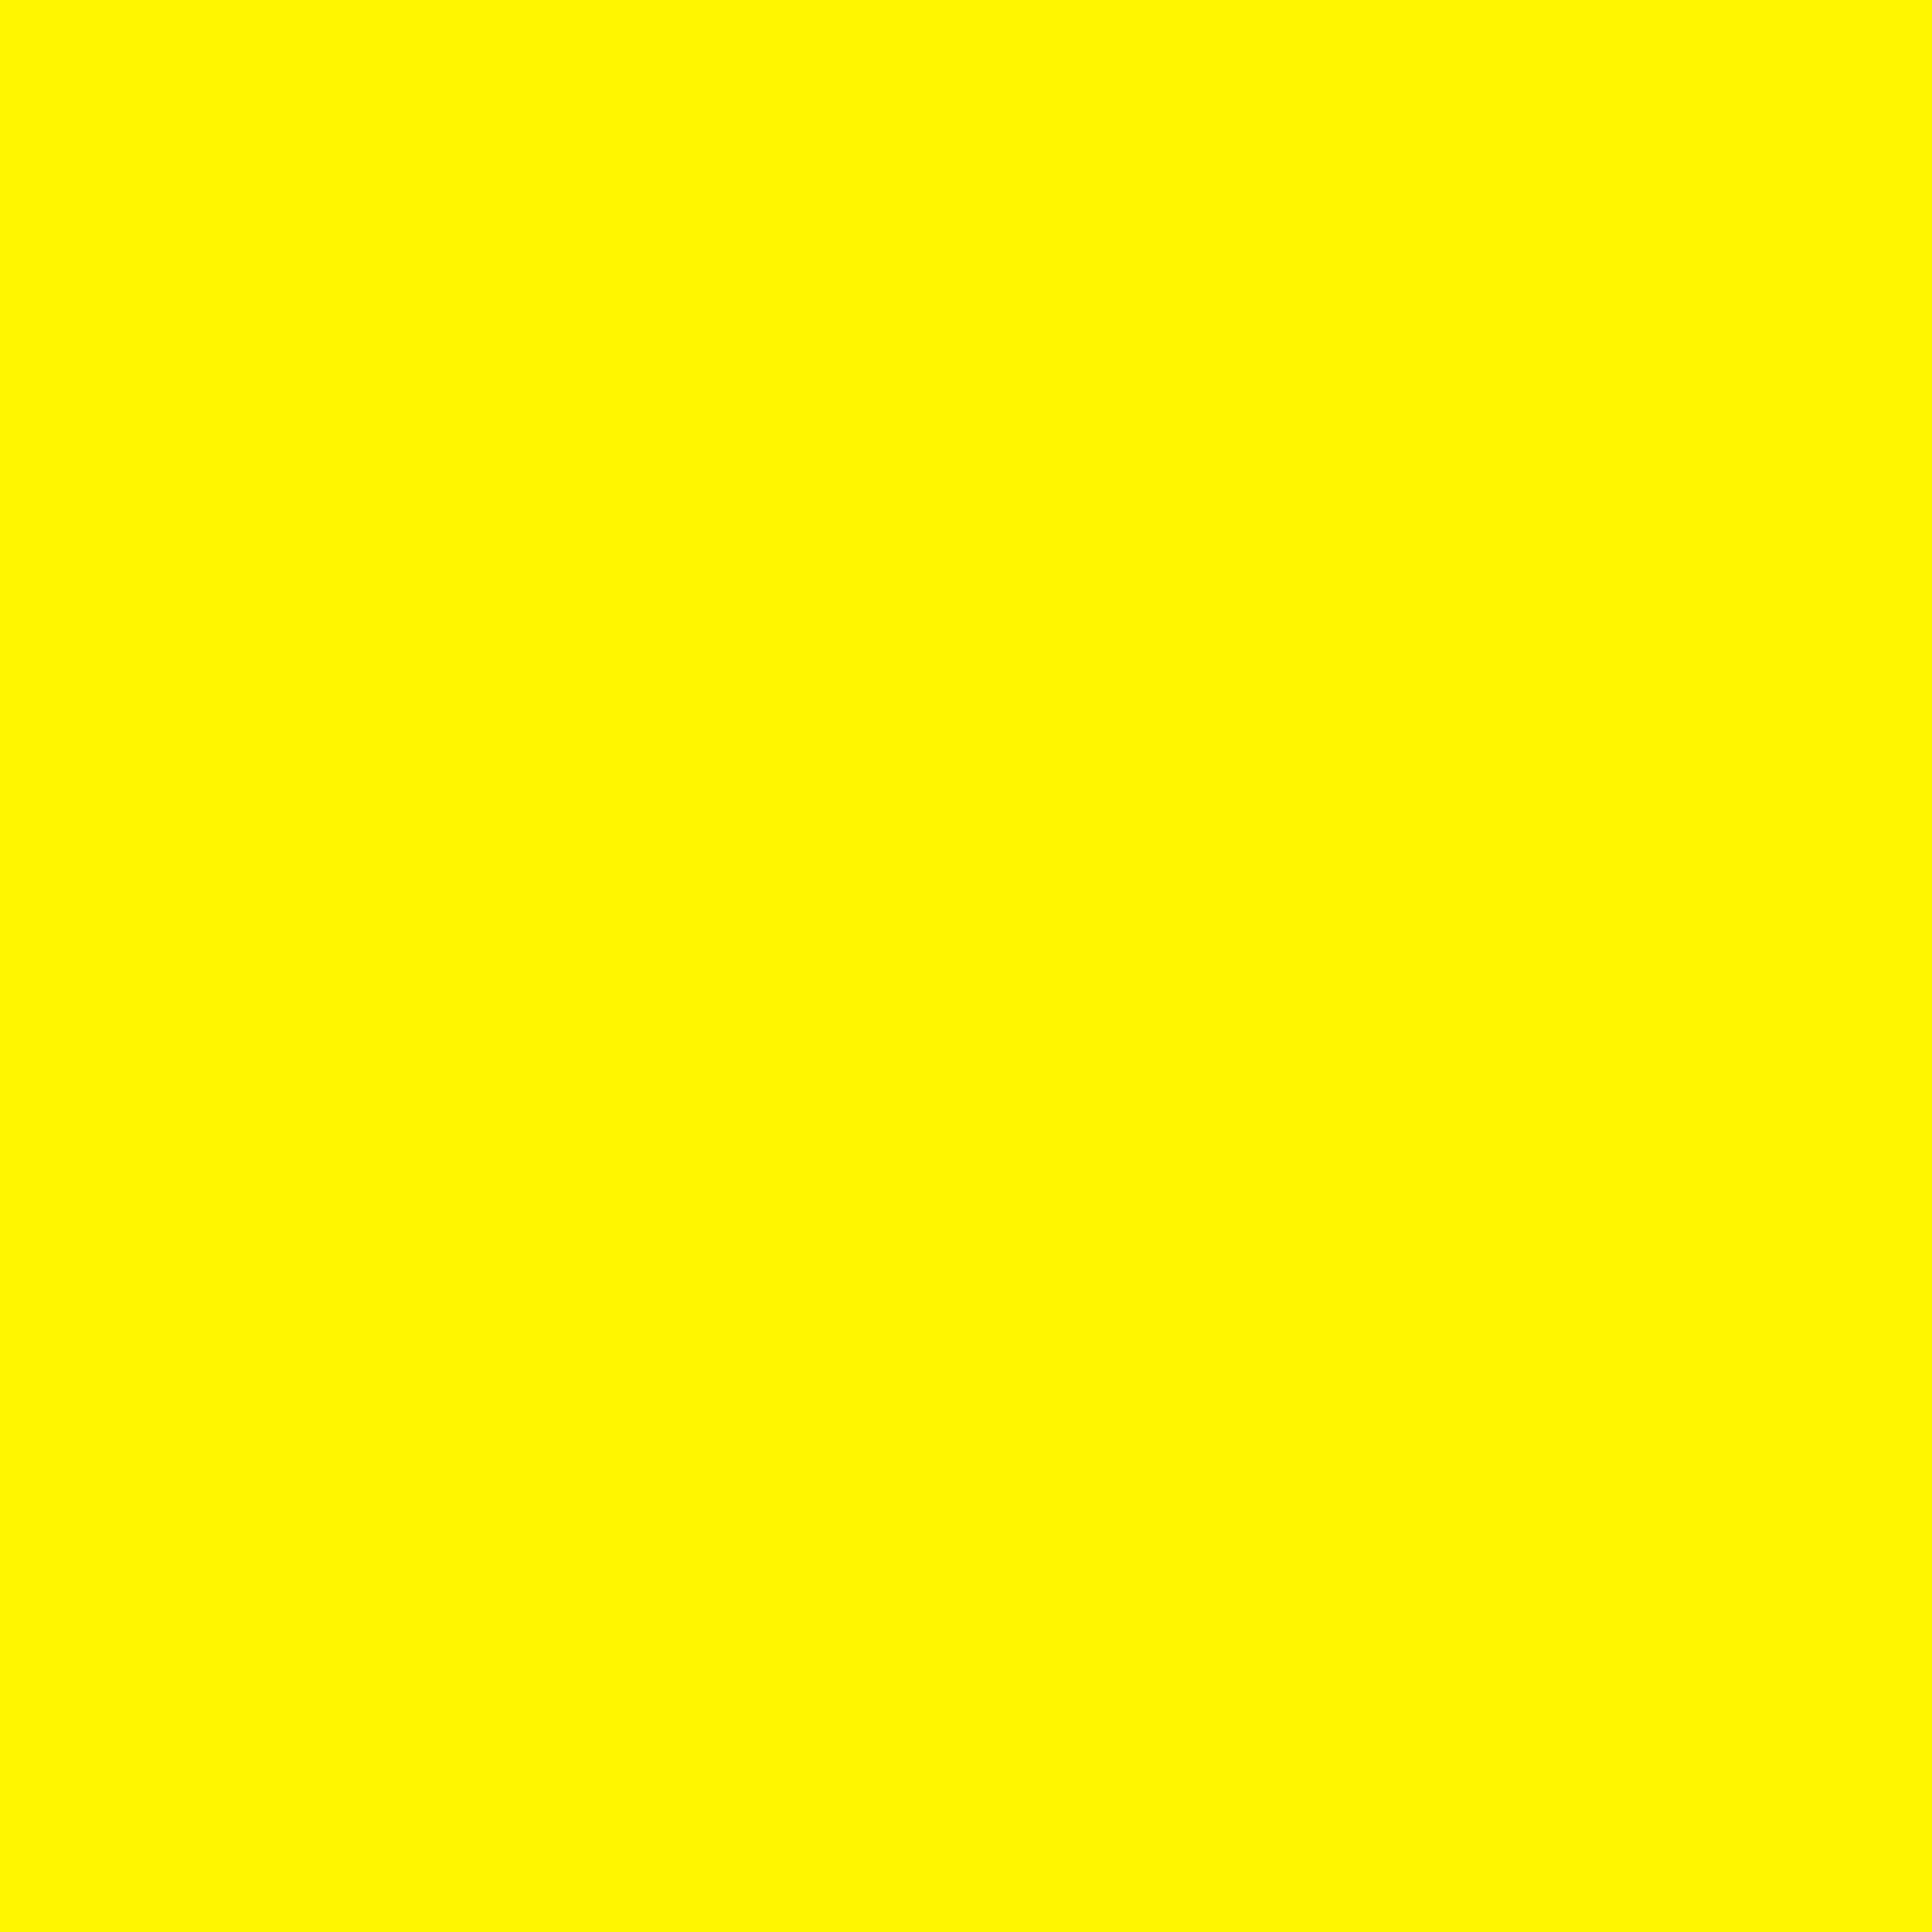 3600x3600 Cadmium Yellow Solid Color Background